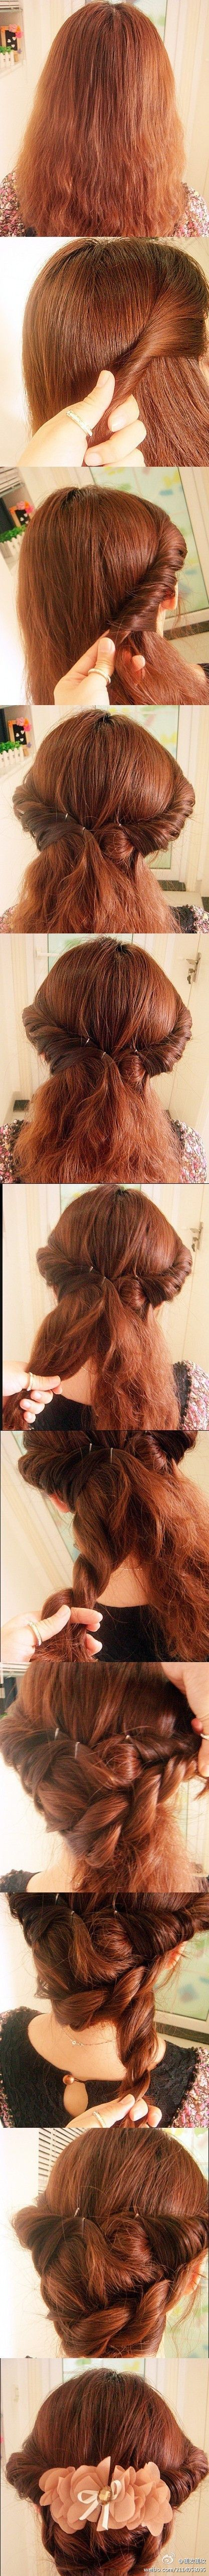 An easy no heat vintage updo